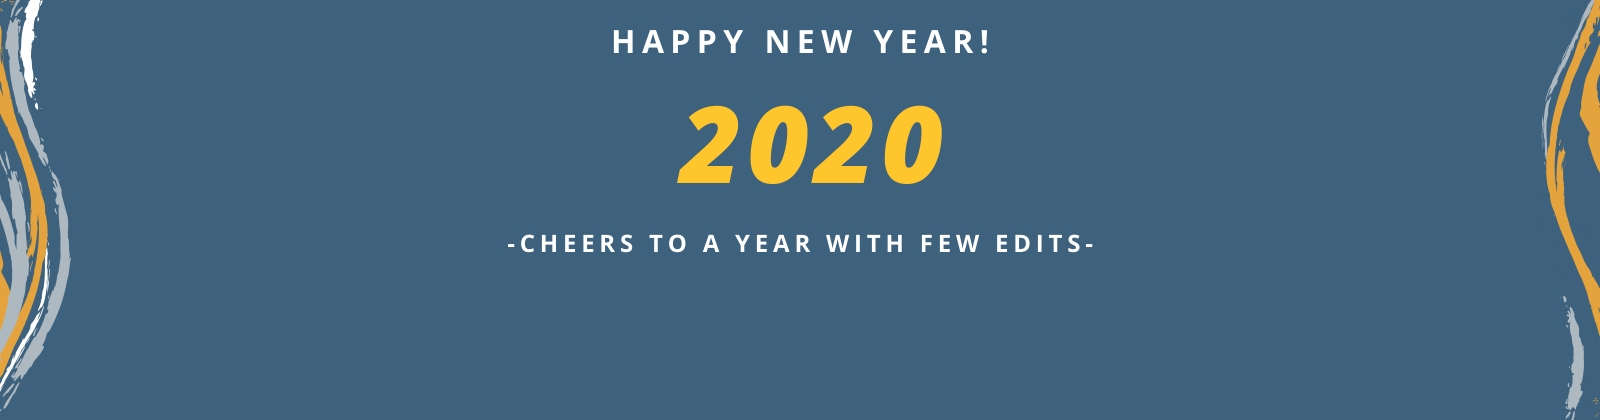 Happy New Year! May 2020 be a year with few edits